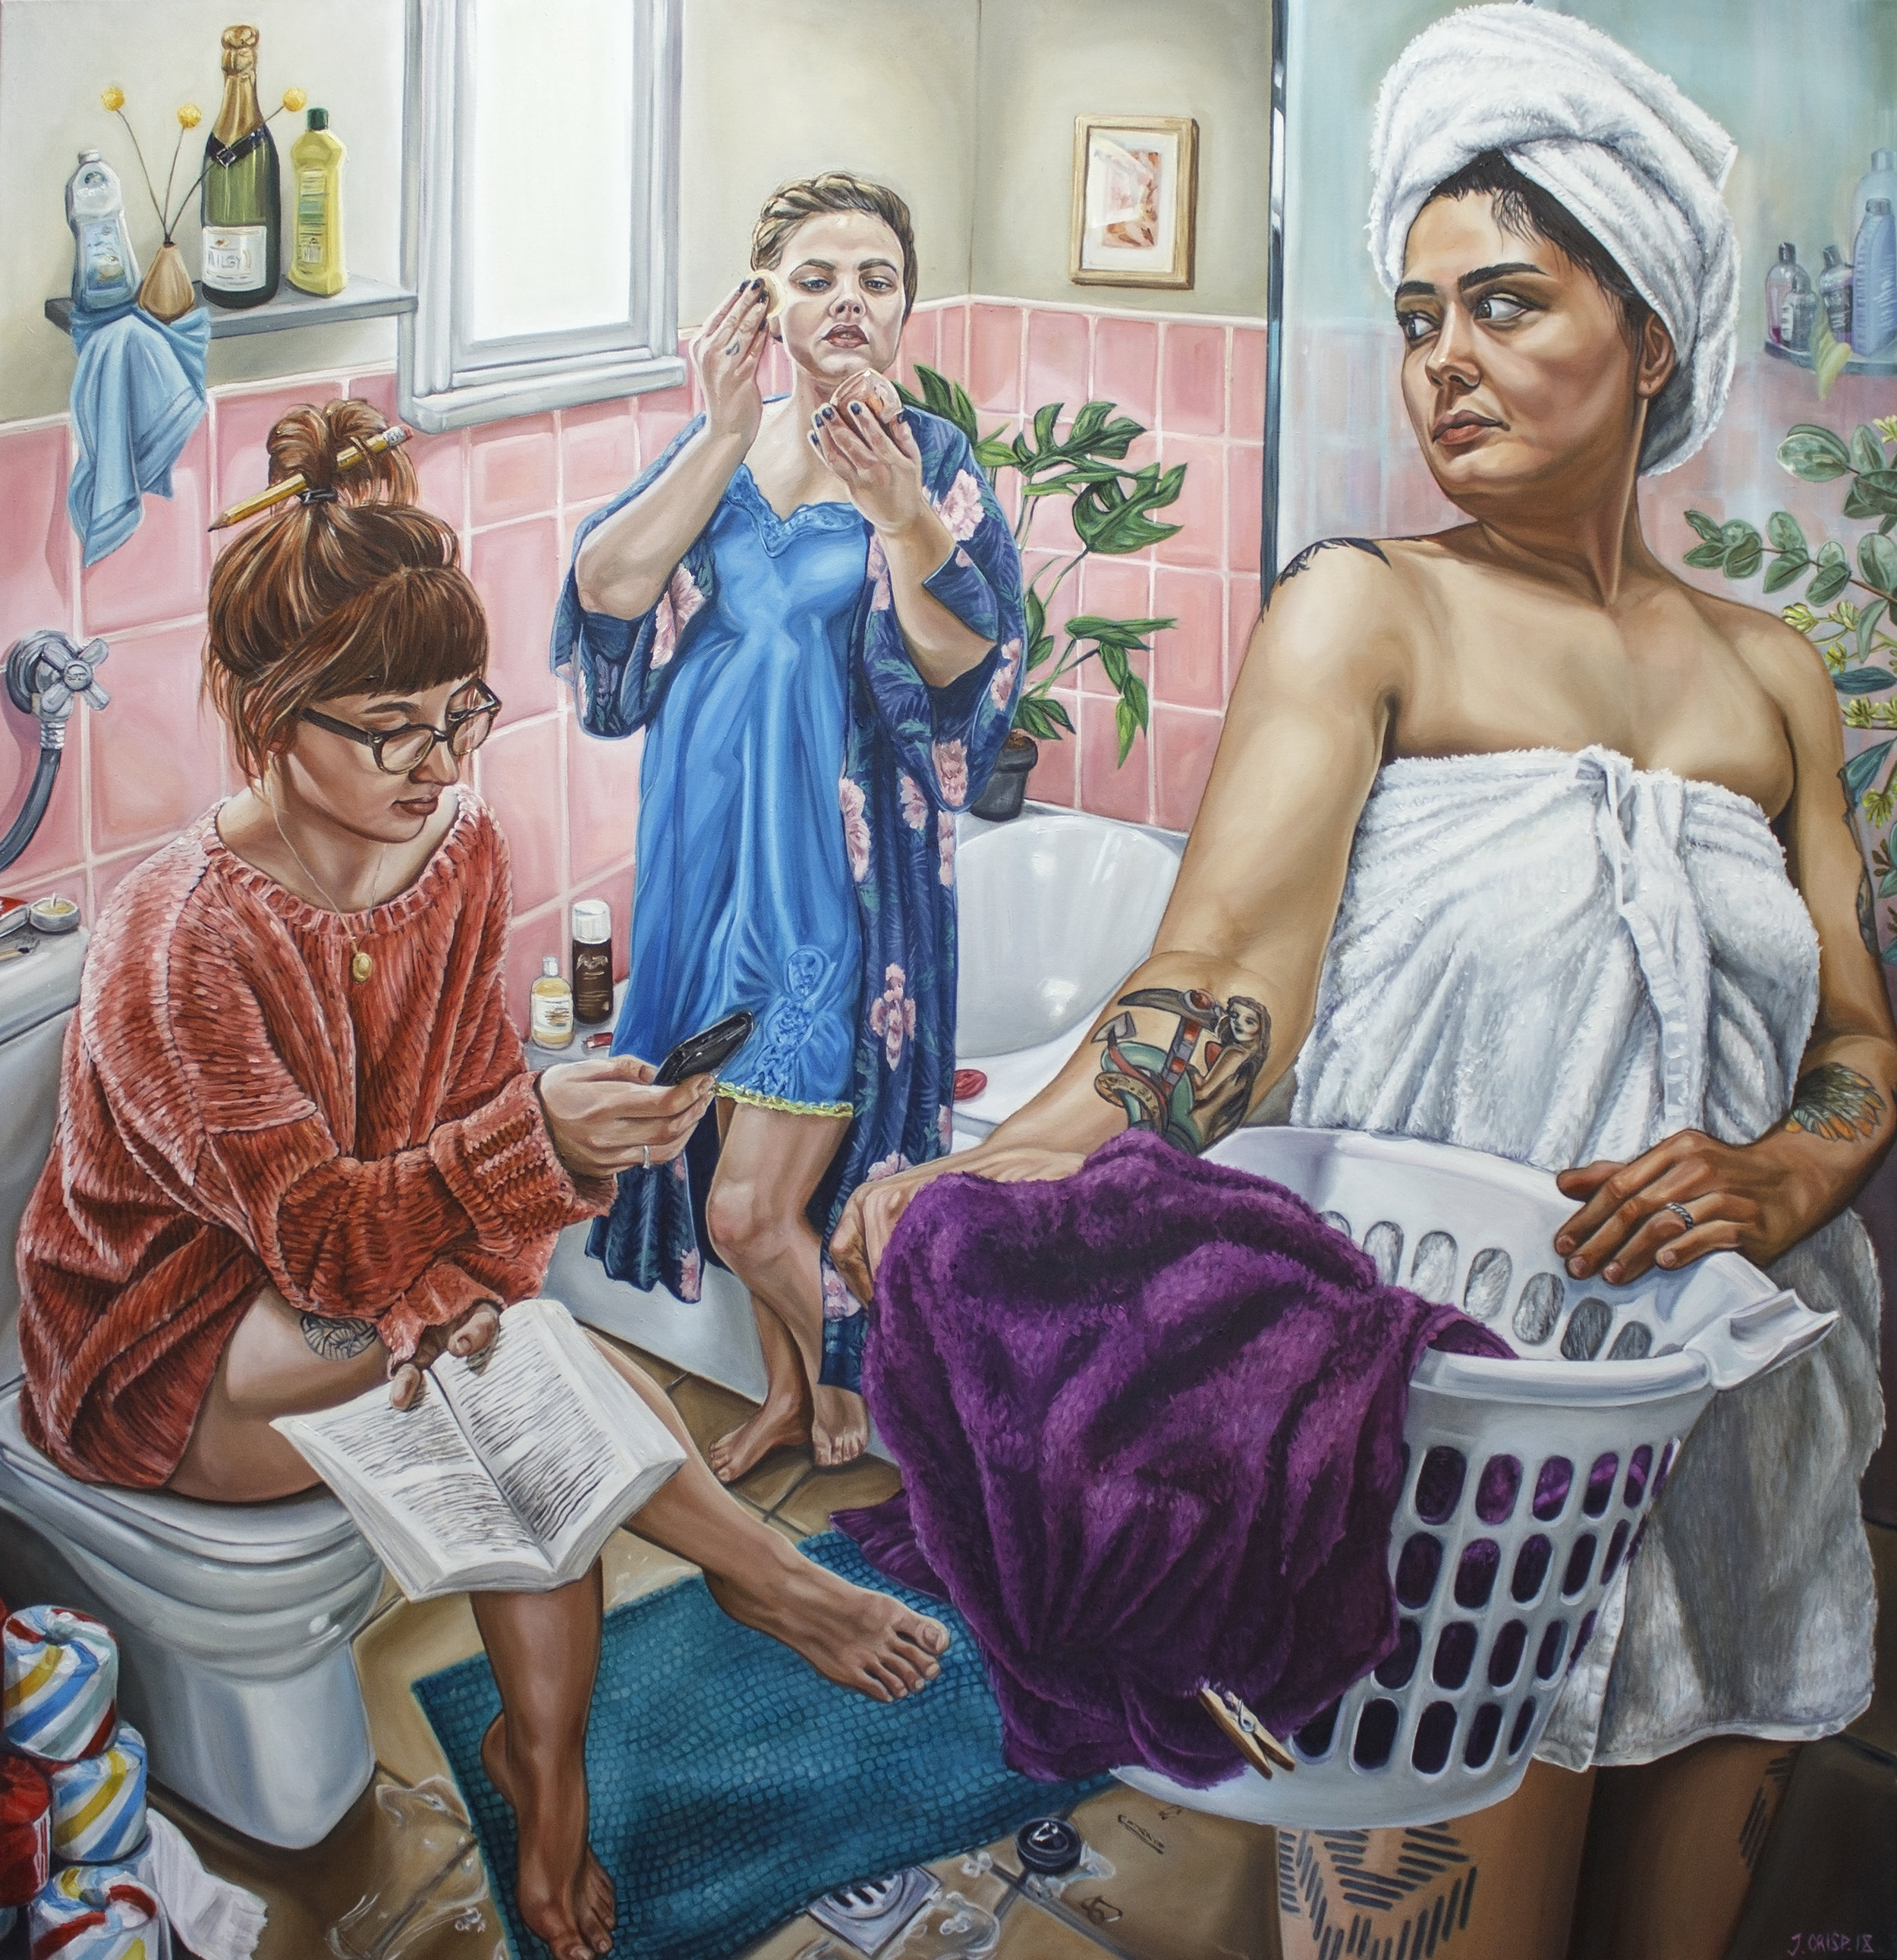 Painting name: My Three Graces Share A Toilet Seat 2018